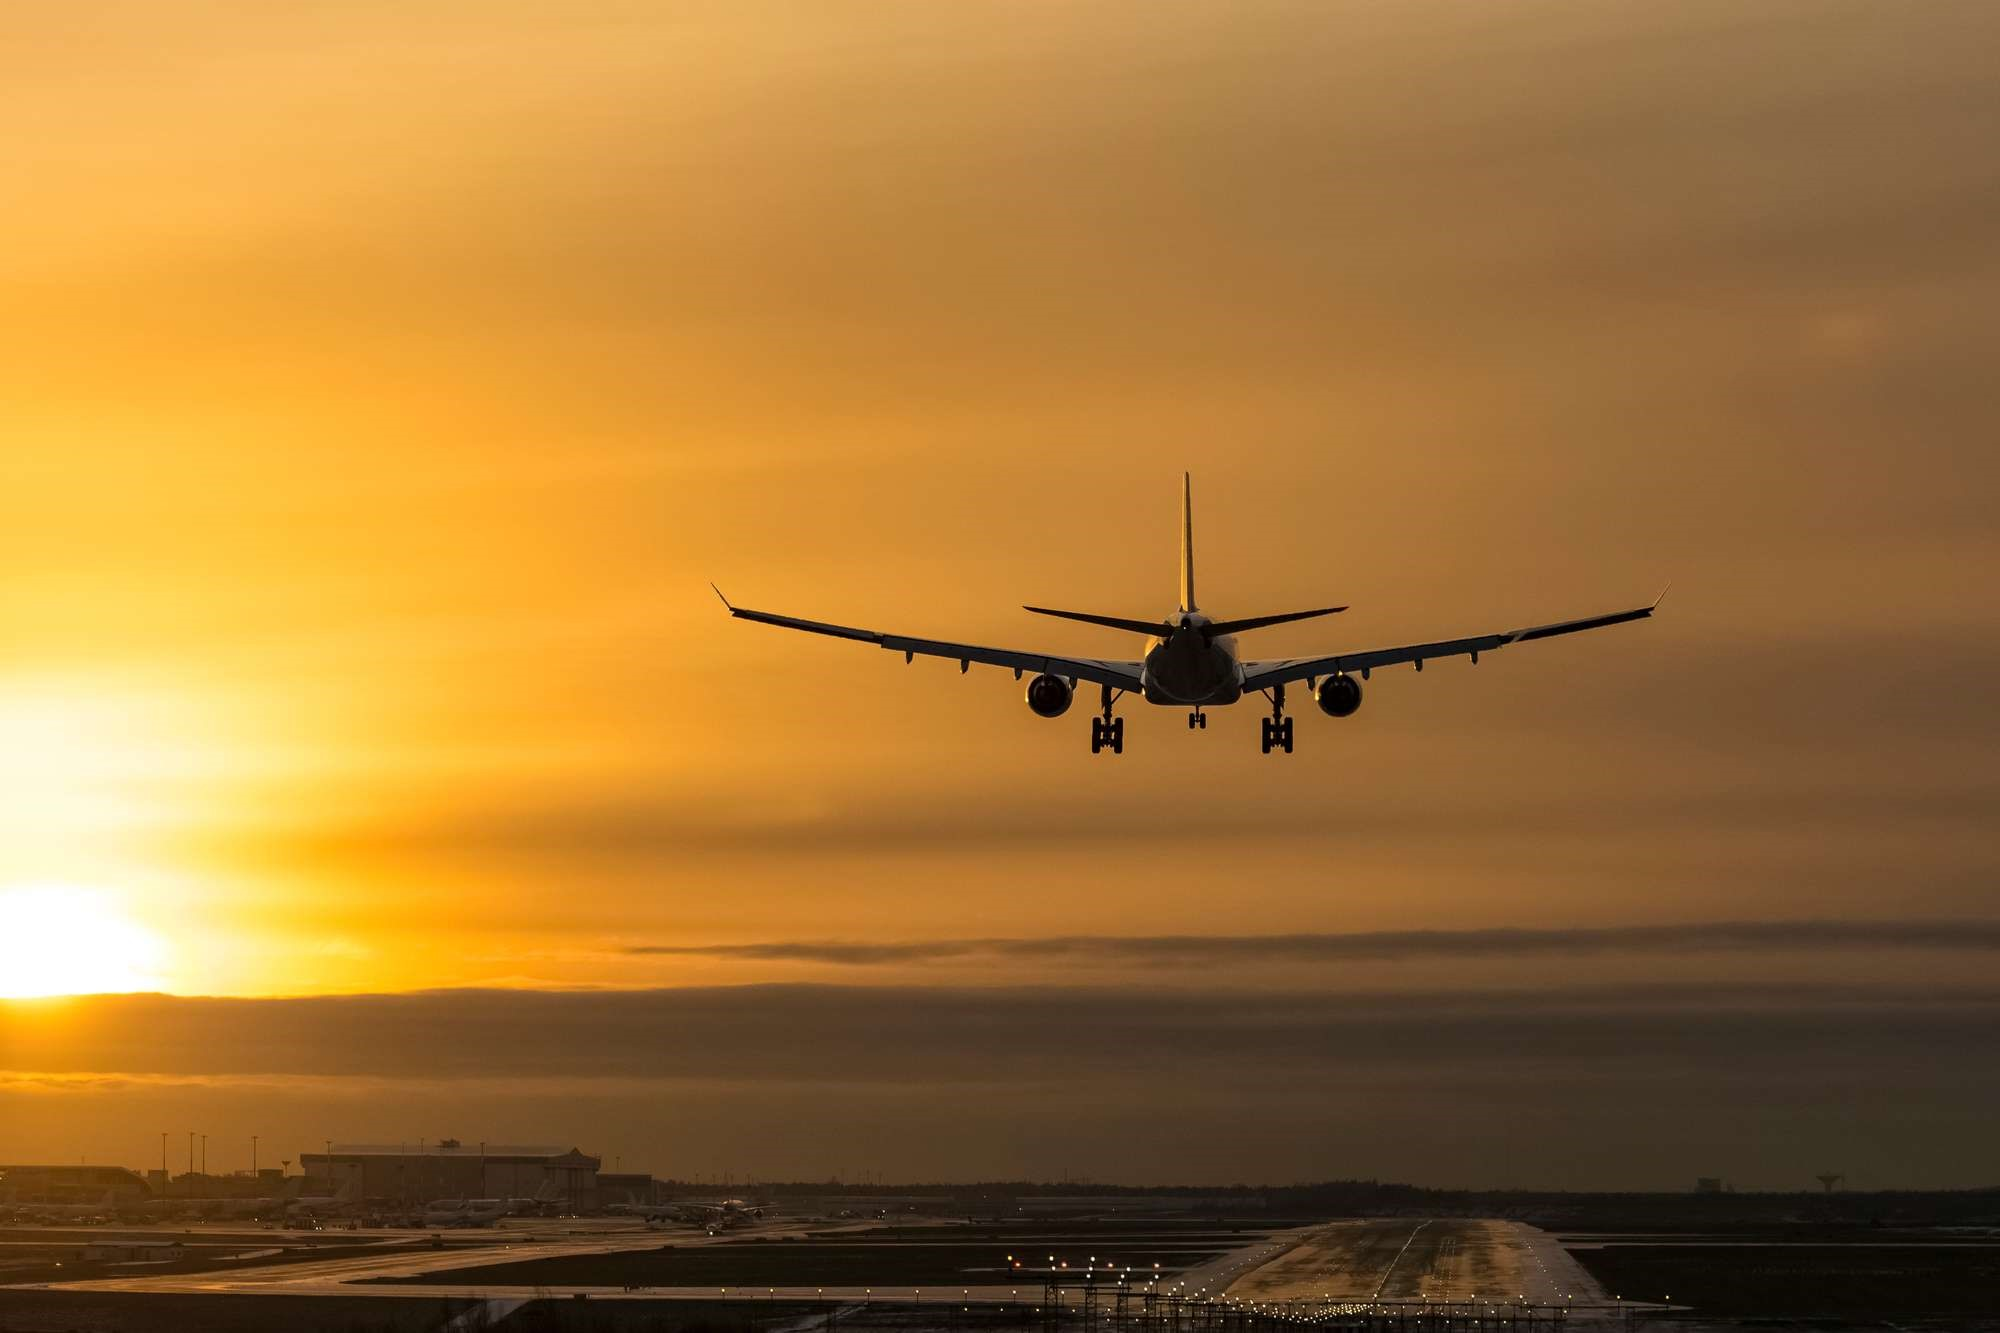 aircraft-landing-istk (provided by Discover The World)